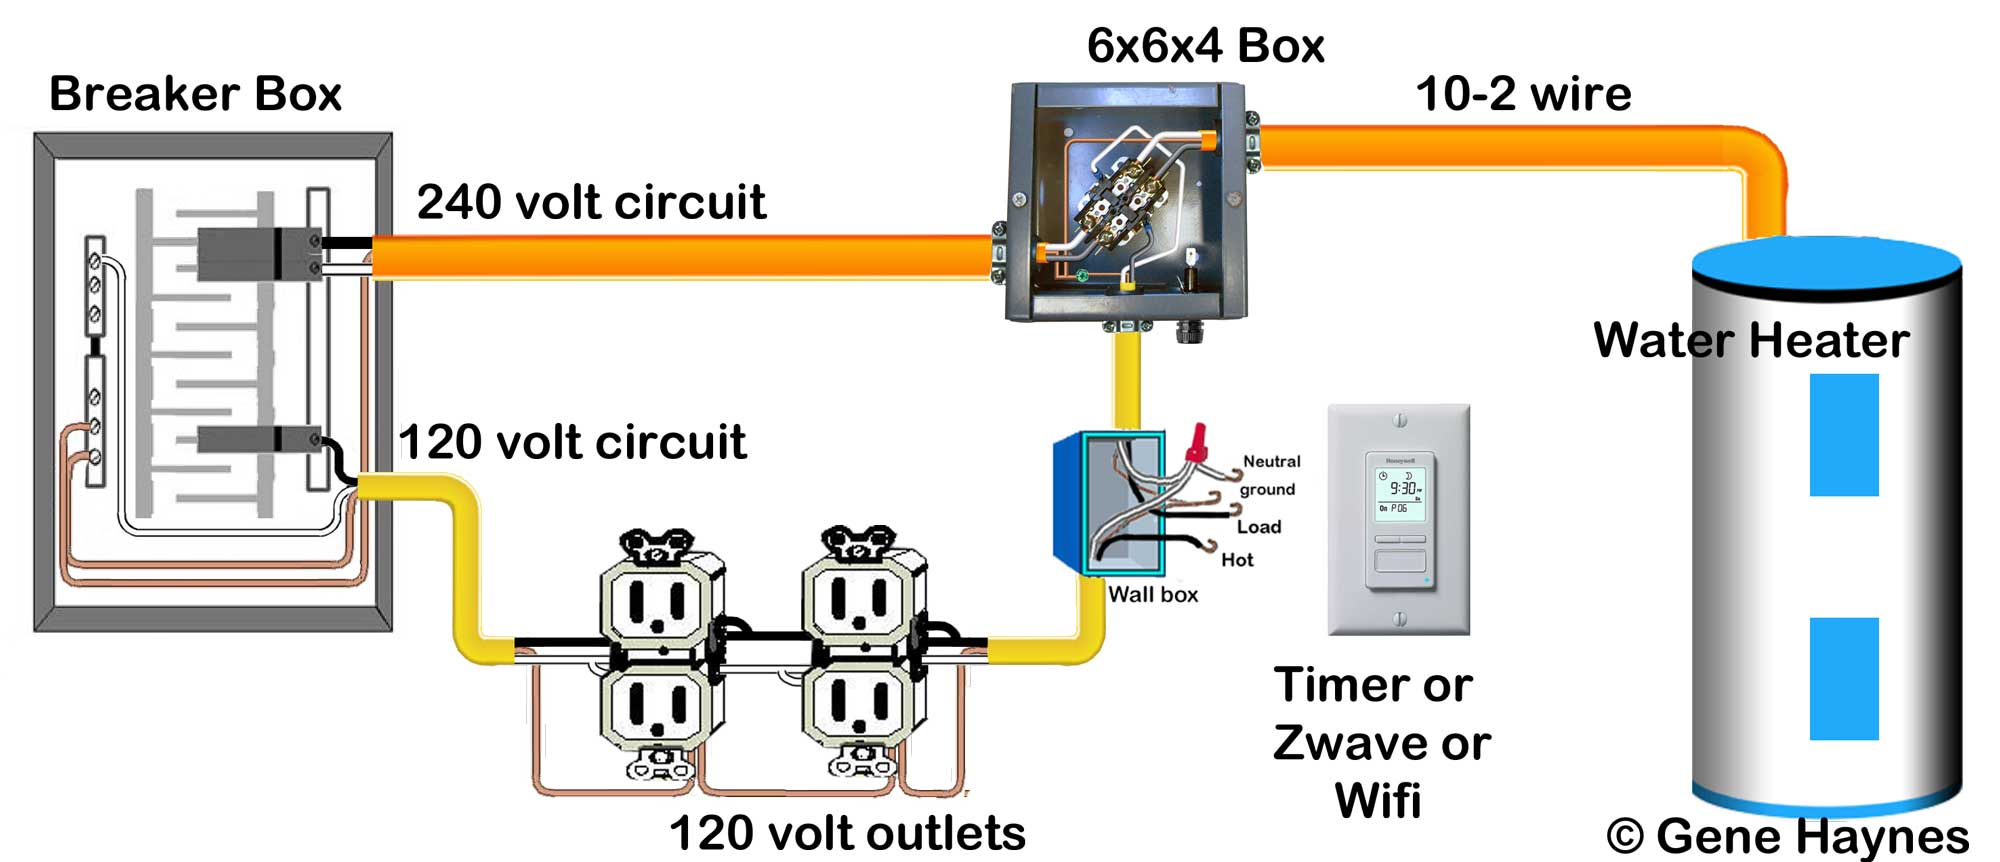 hight resolution of 240 volt circuits can be controlled by 120v using a contactor this lets you install timer or home automation device to any 240 volt circuit